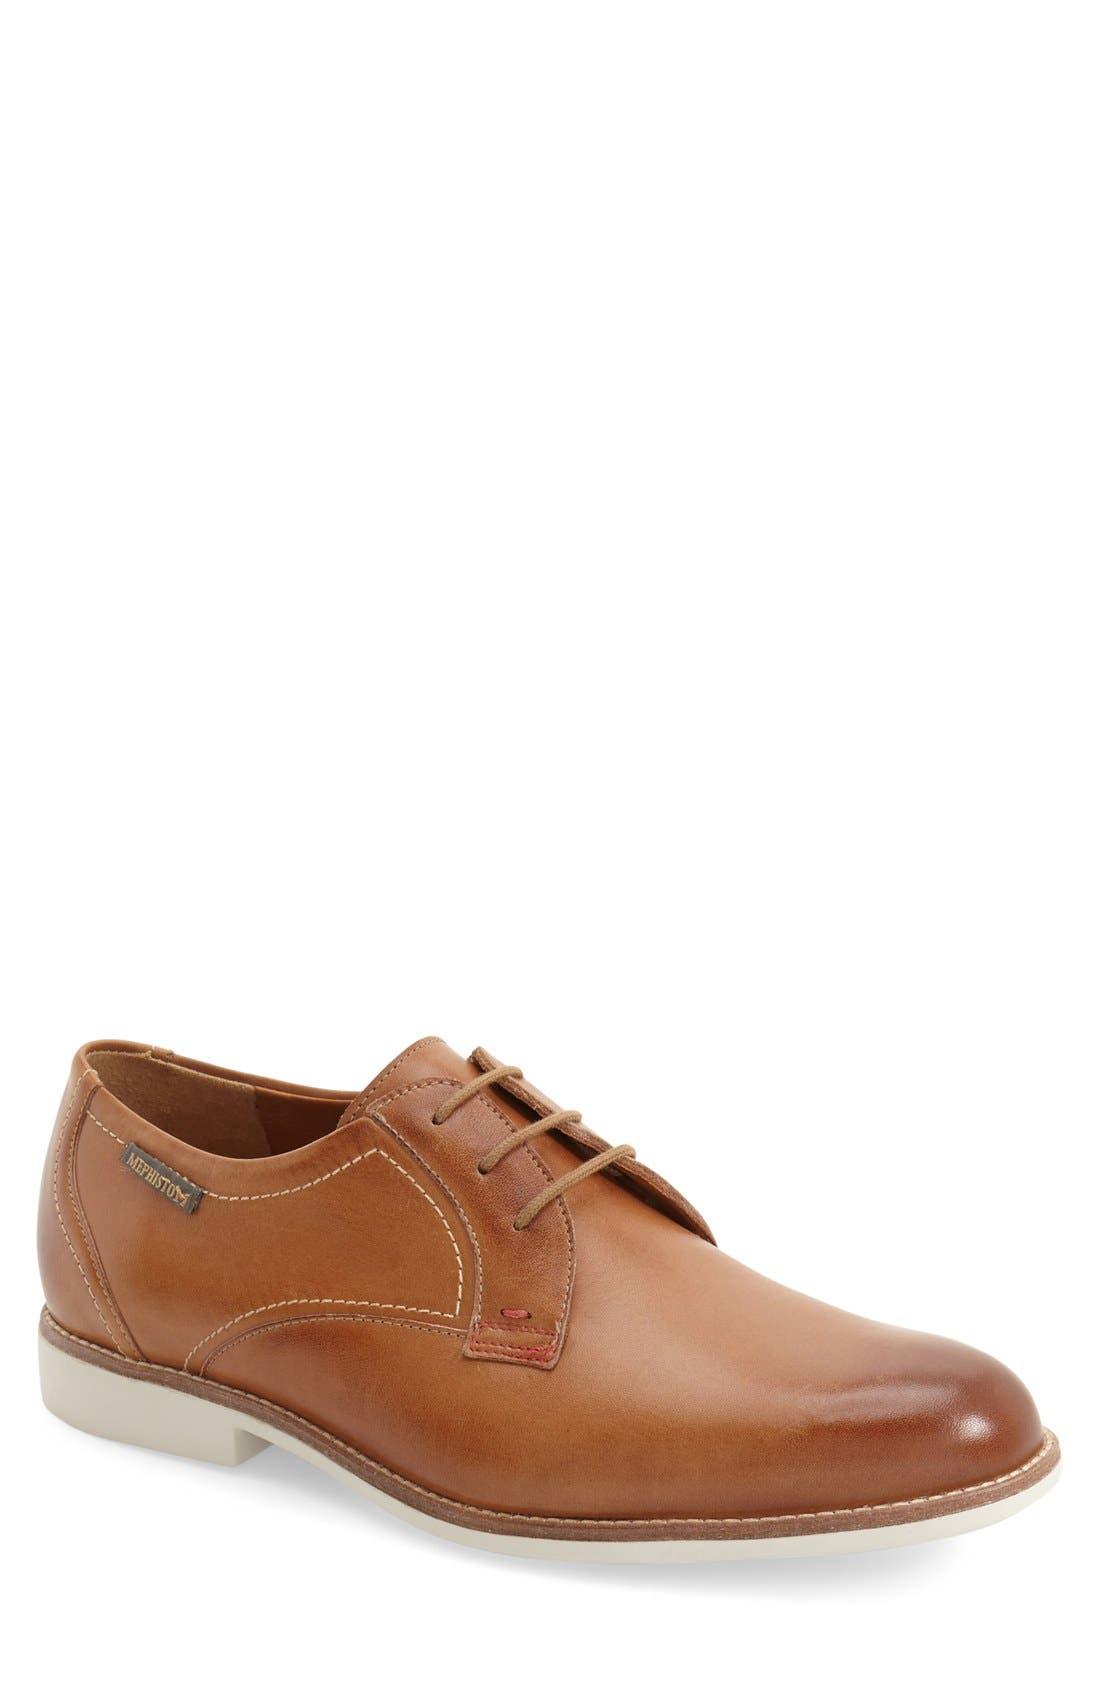 Mephisto Mens Orlando Lace Up Plain Toe Derby Shoes